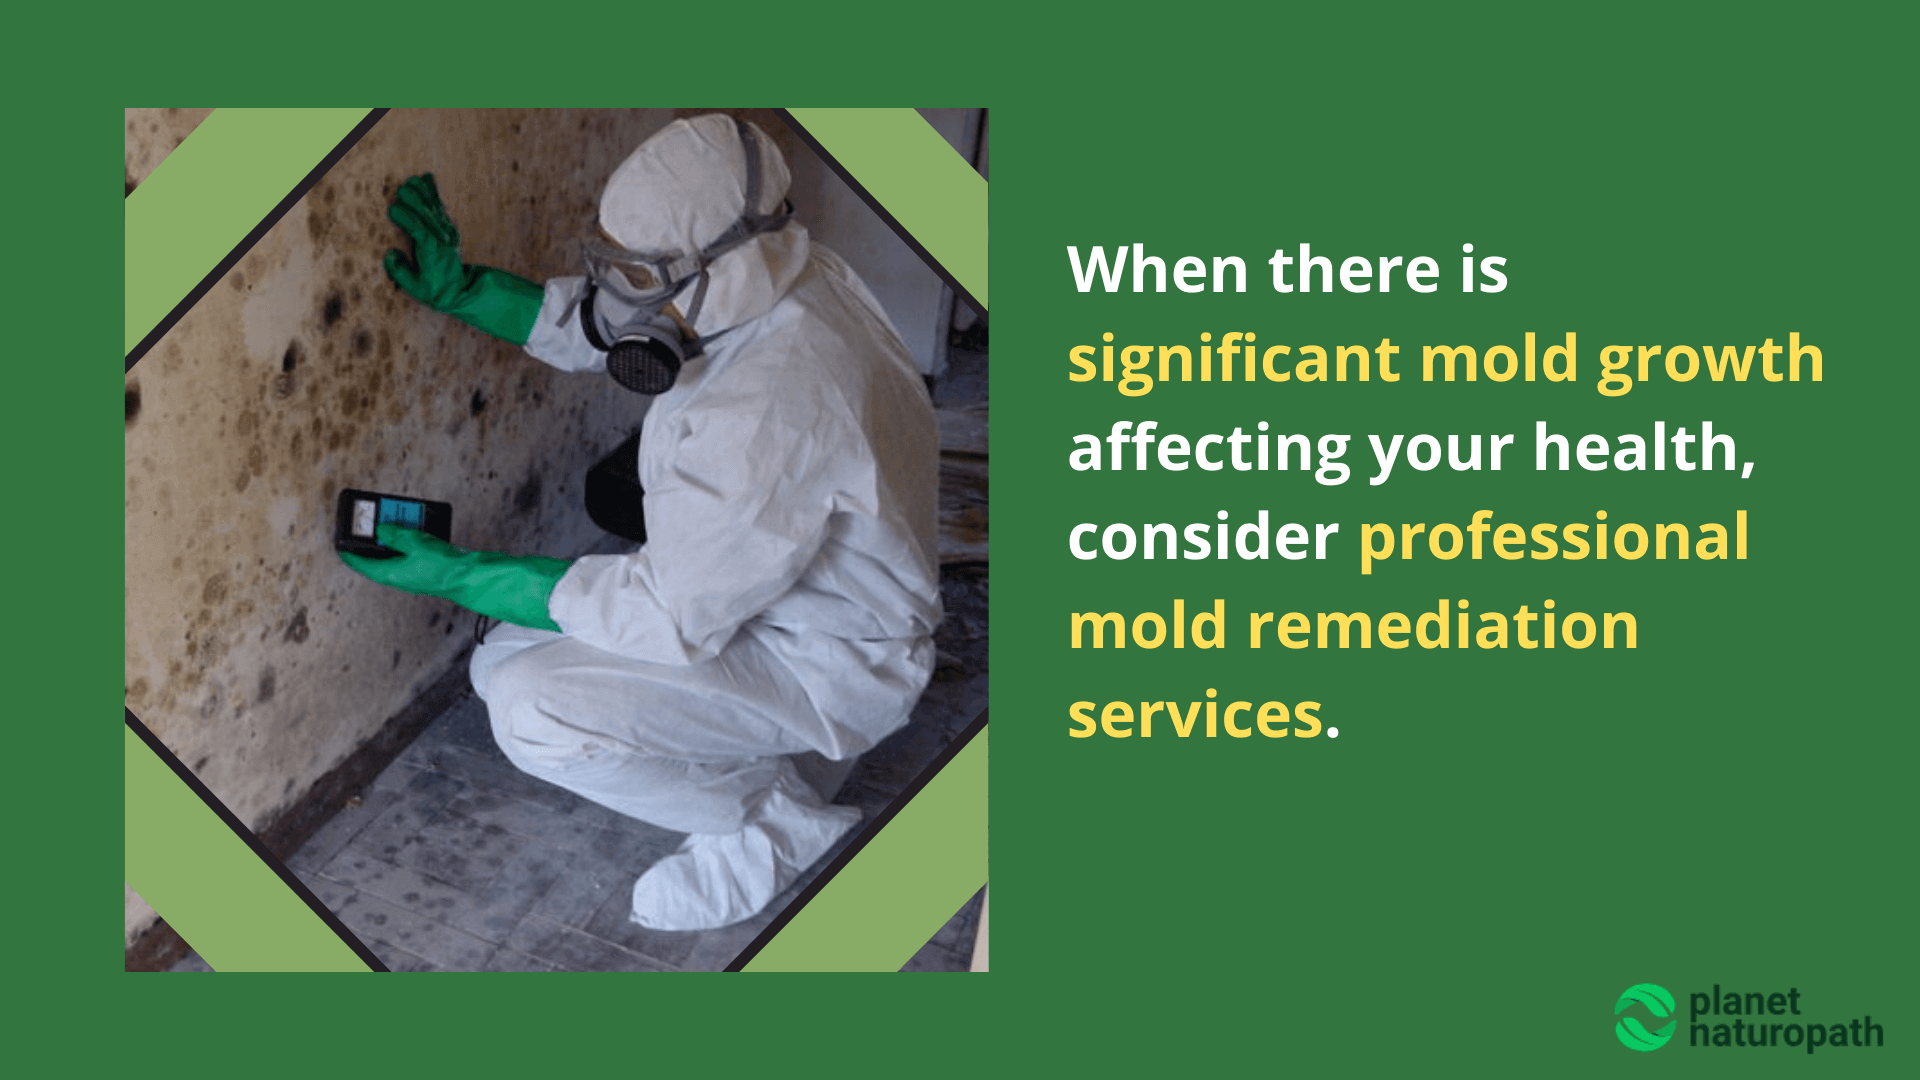 Professional-mold-remediation-services